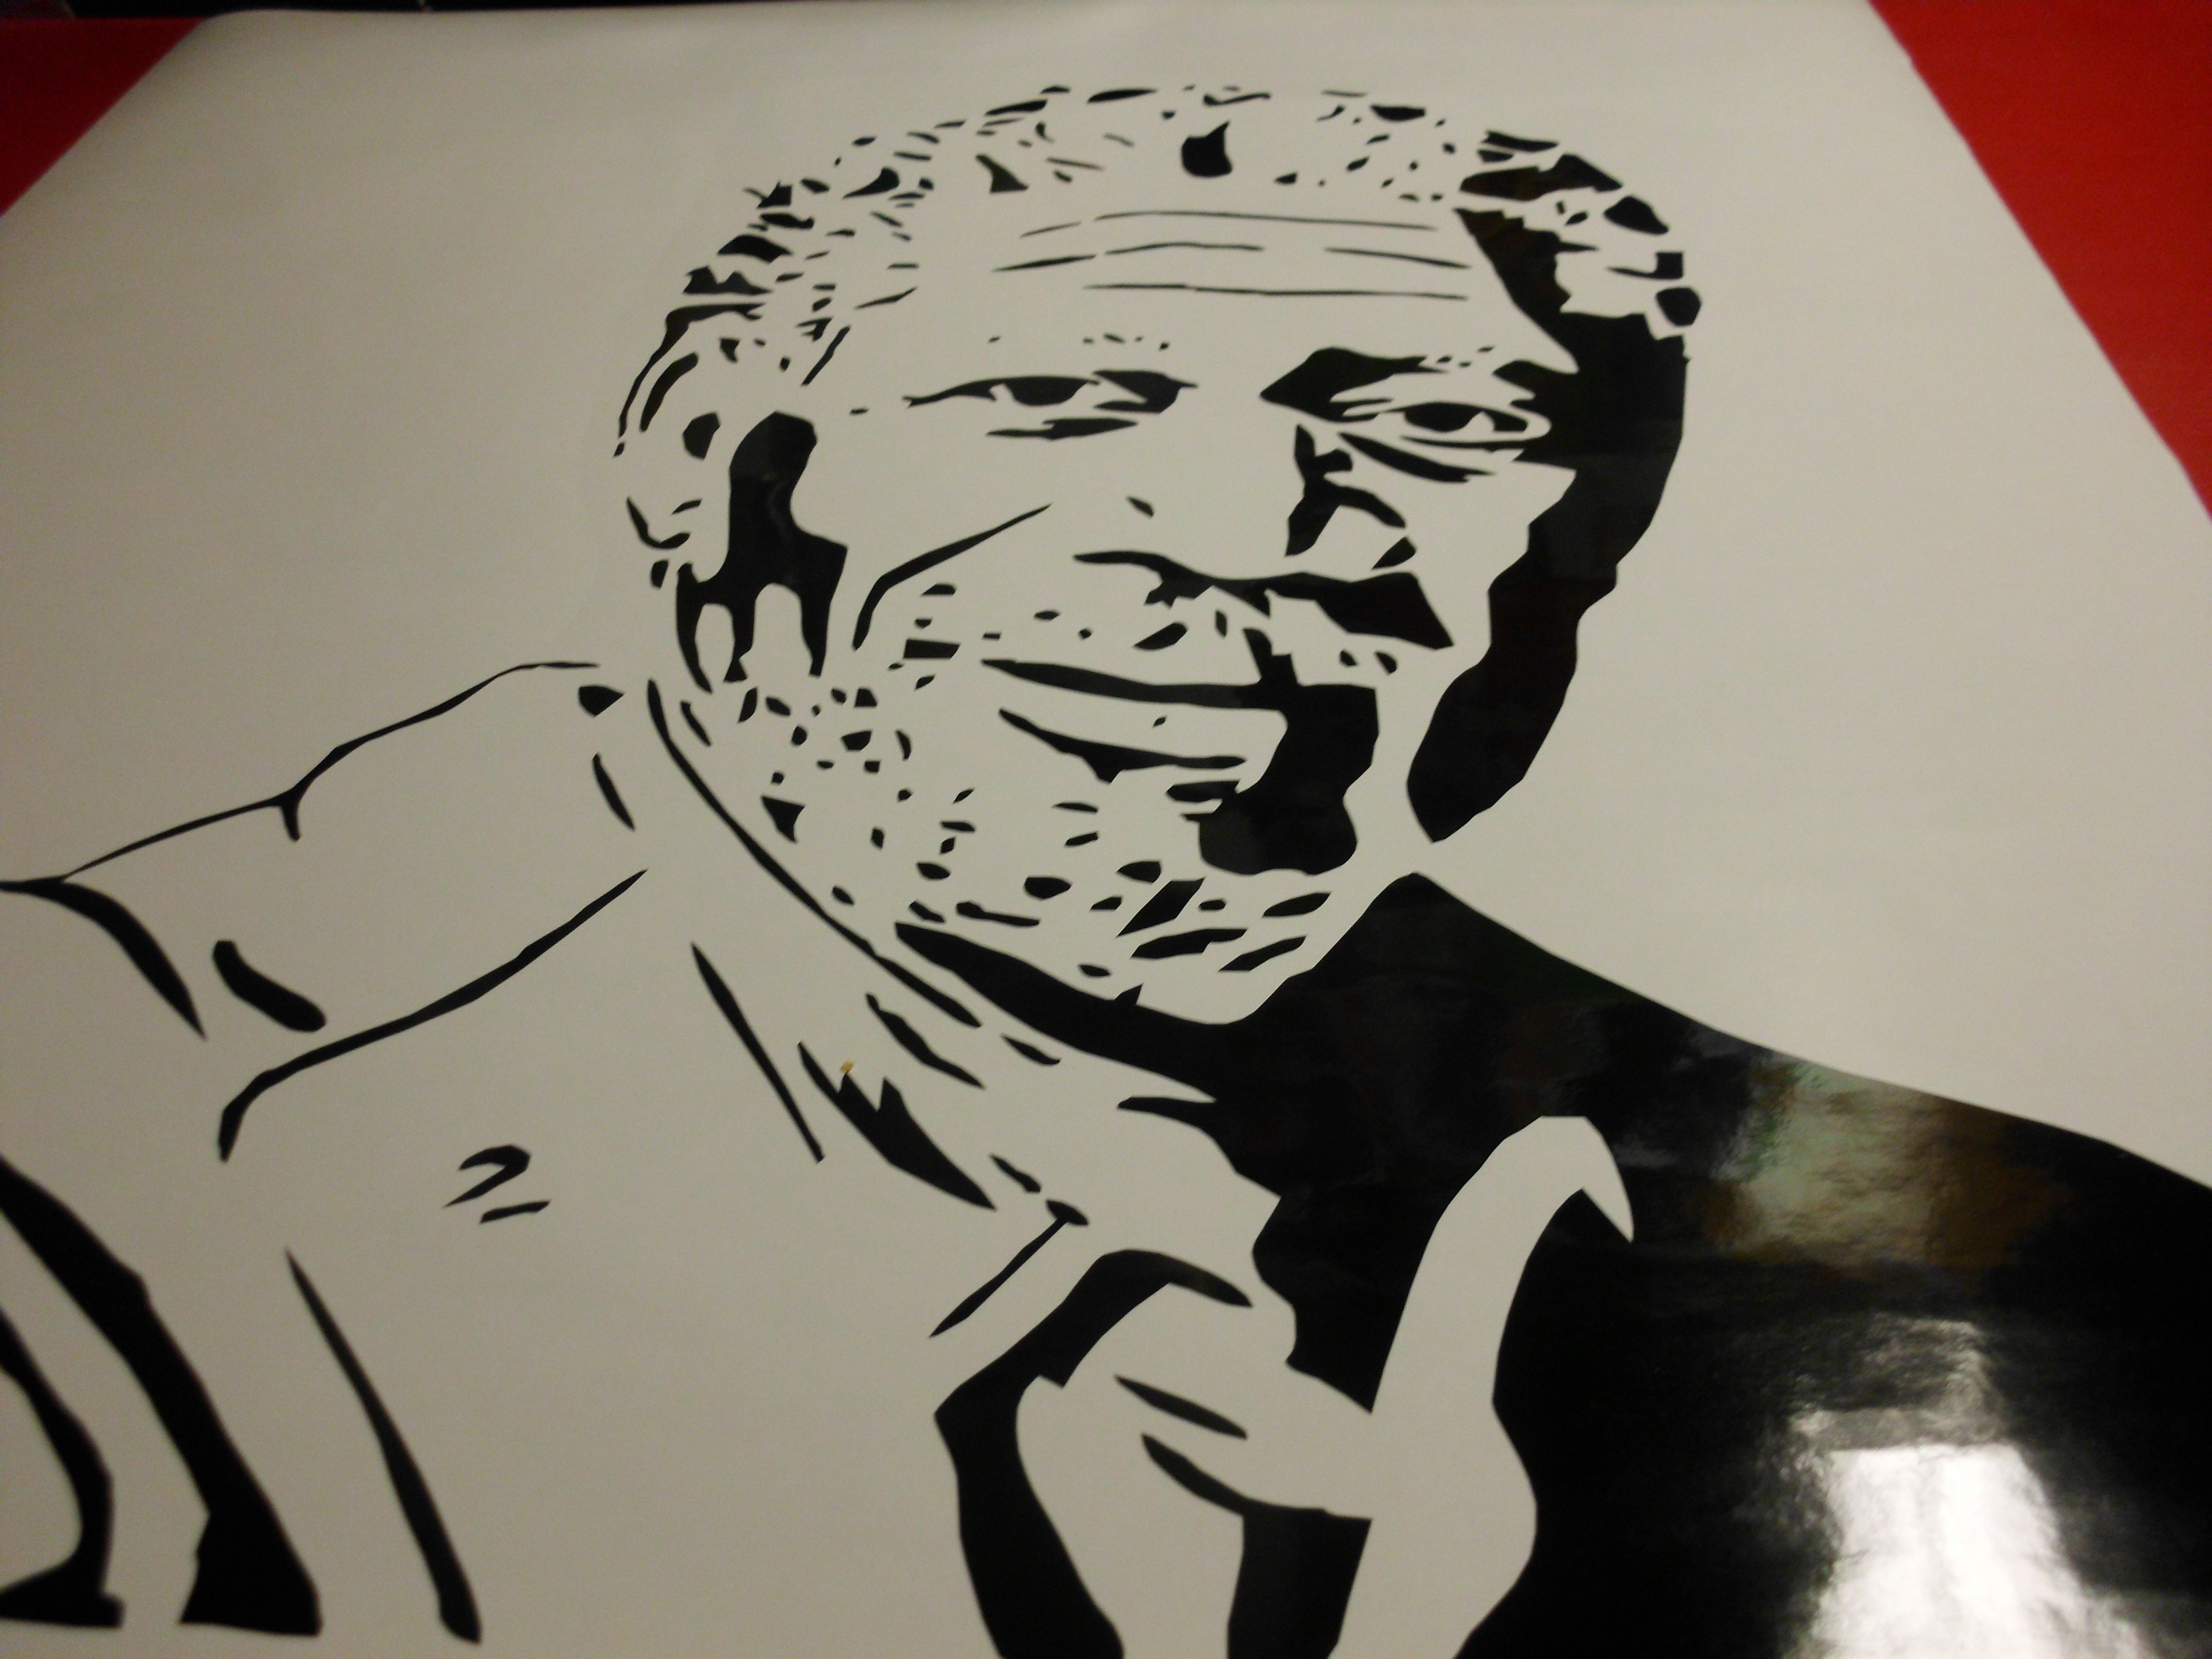 Morgan Freeman Silhouette Vinyl Decal Can Be Used As A Bumper - Vinyl decals for your car